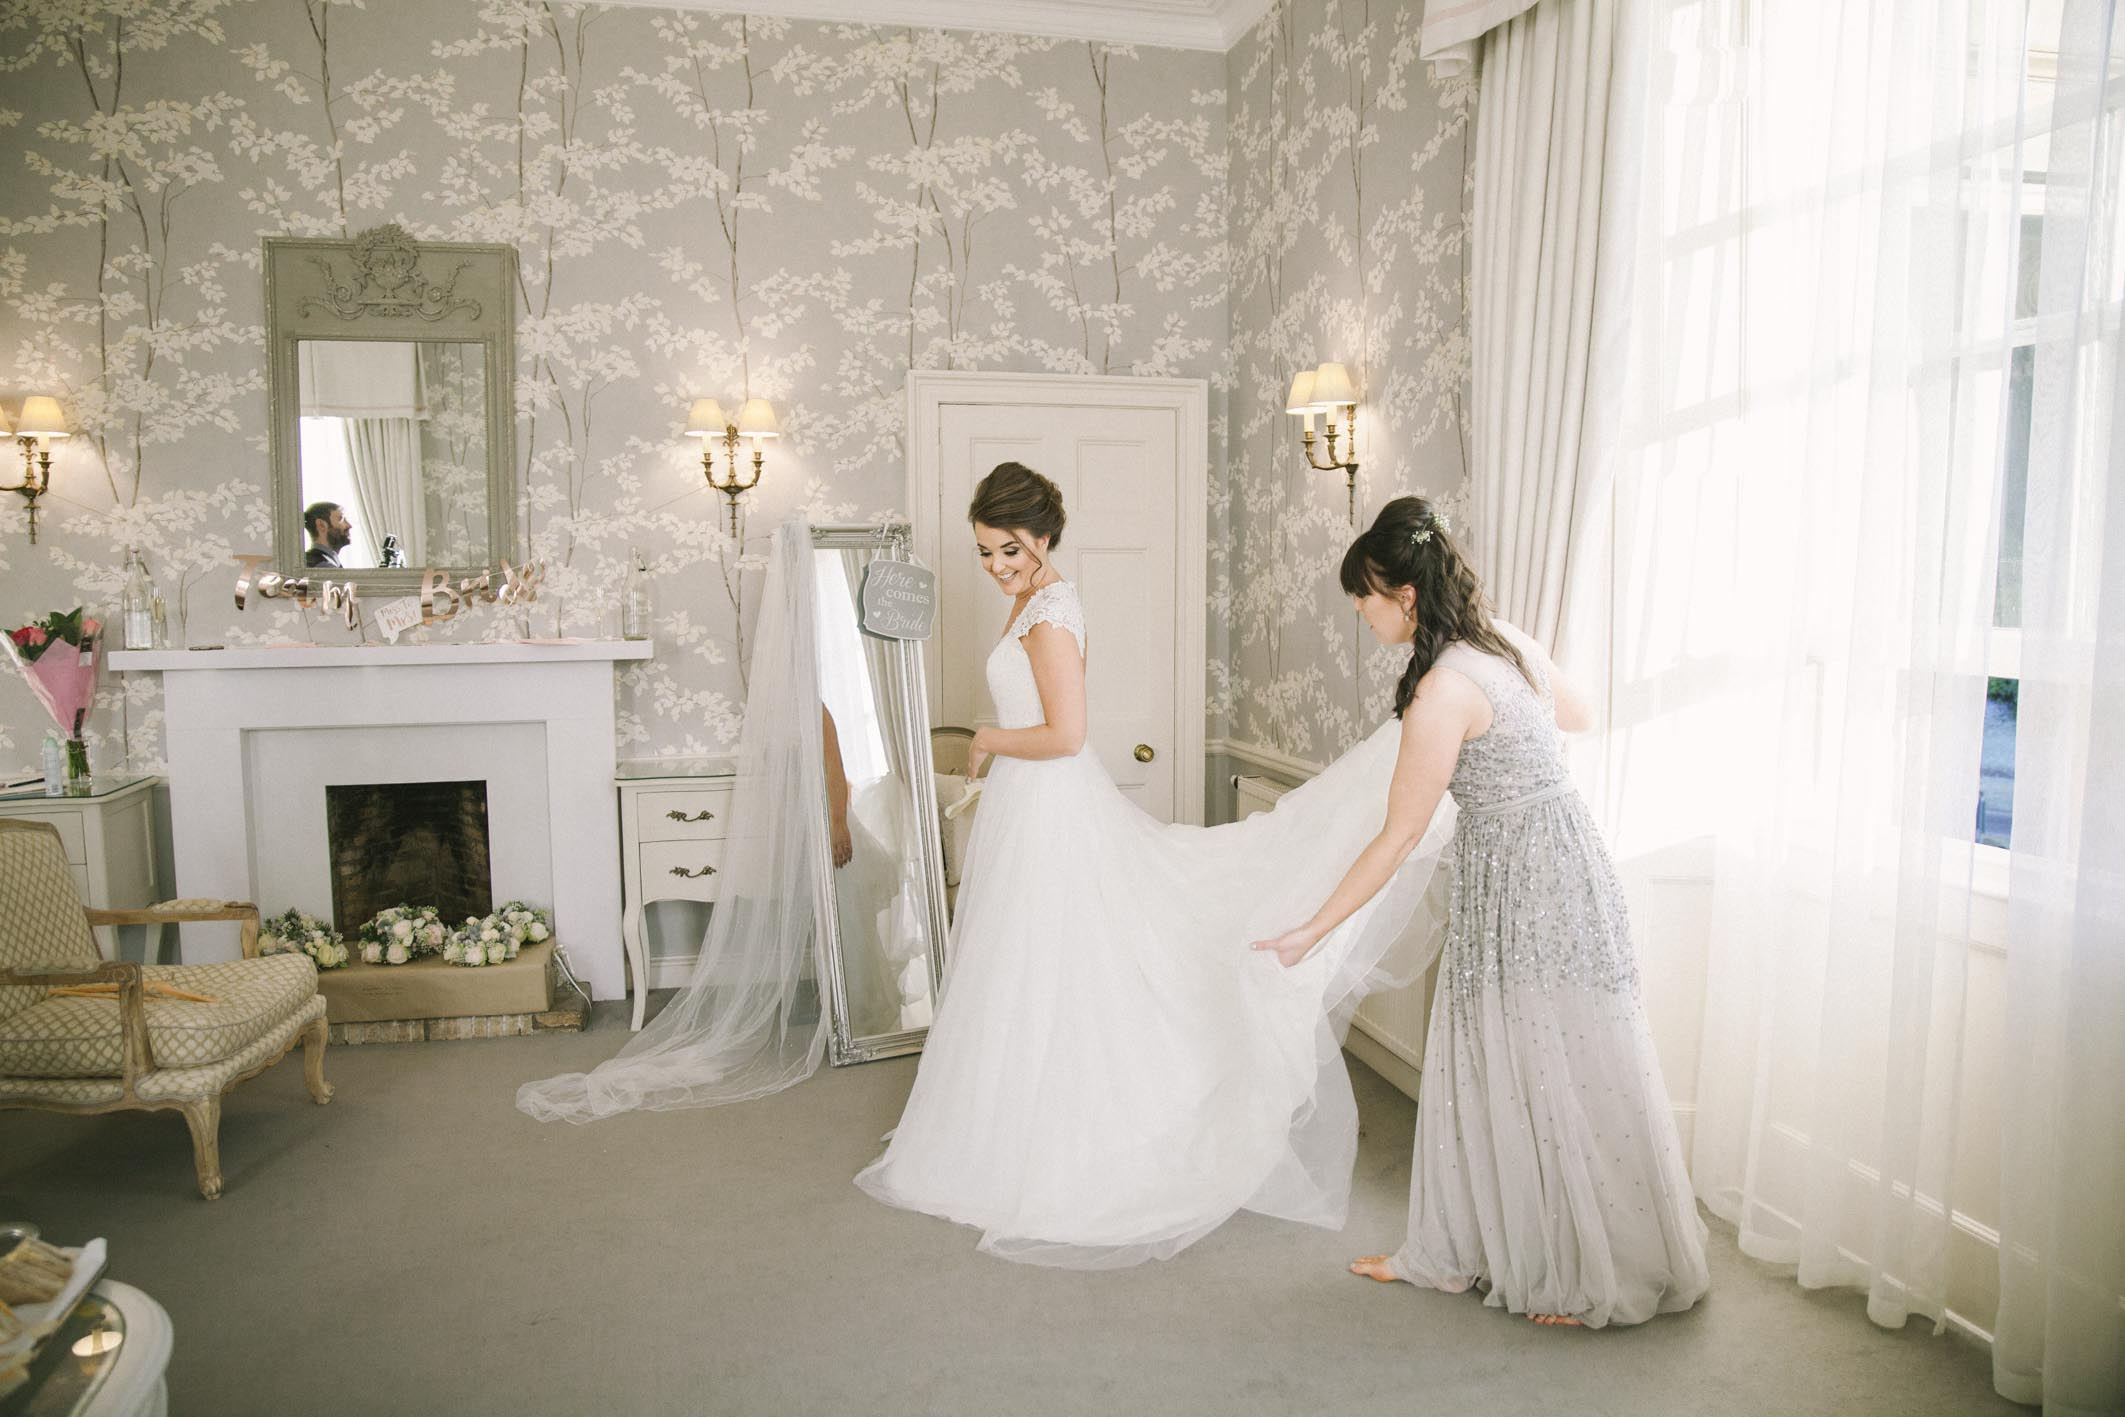 Bride and bridesmaids getting ready at Balbirnie House Wedding Photography by Ceranna, Edinburgh based Wedding and Elopement Photographer